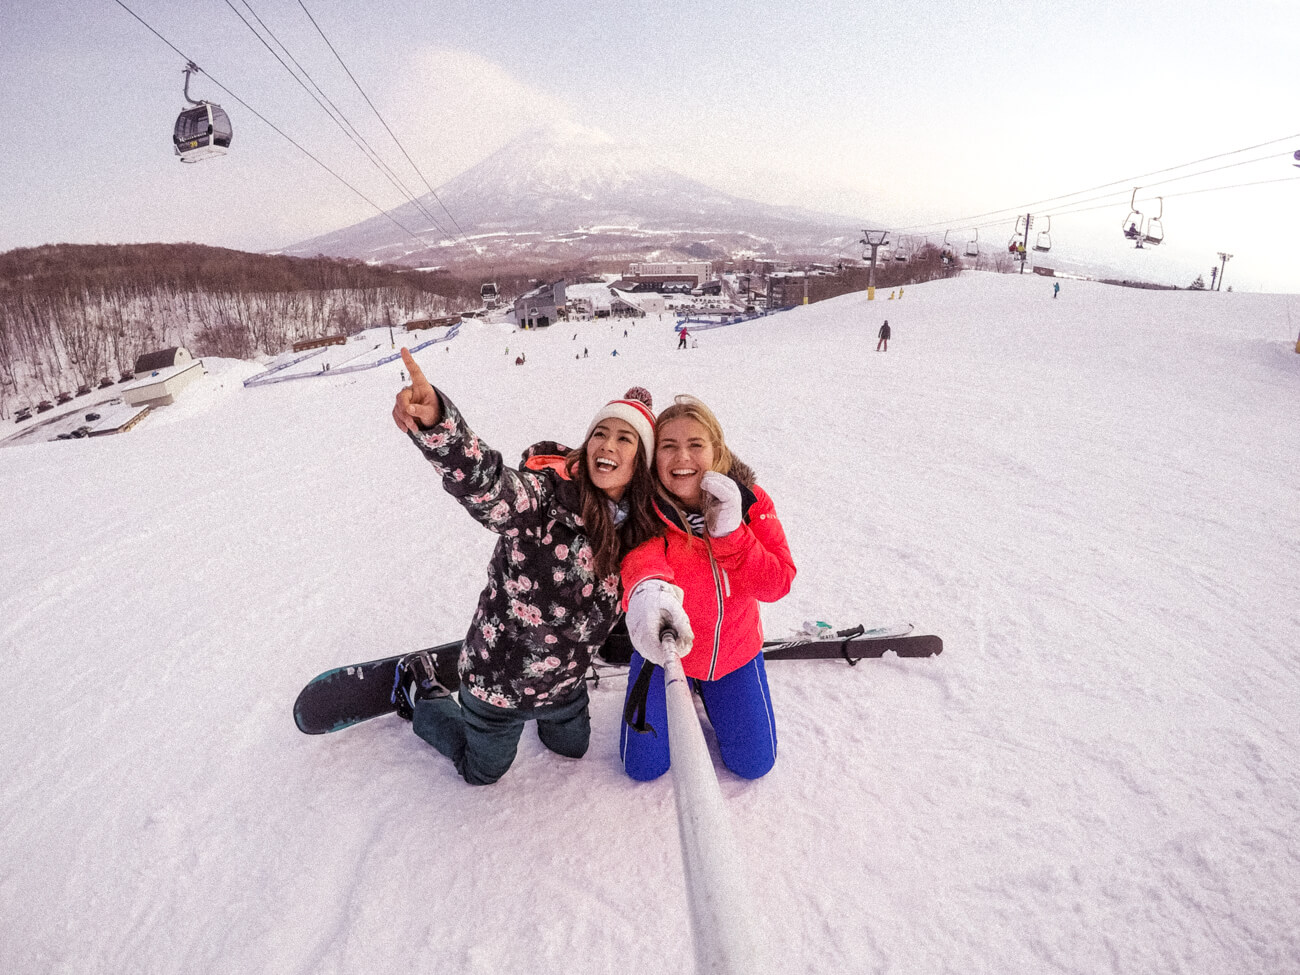 Skiing in Niseko, Japan with Ski Week | Where's Mollie? A Travel and Adventure Lifestyle Blog